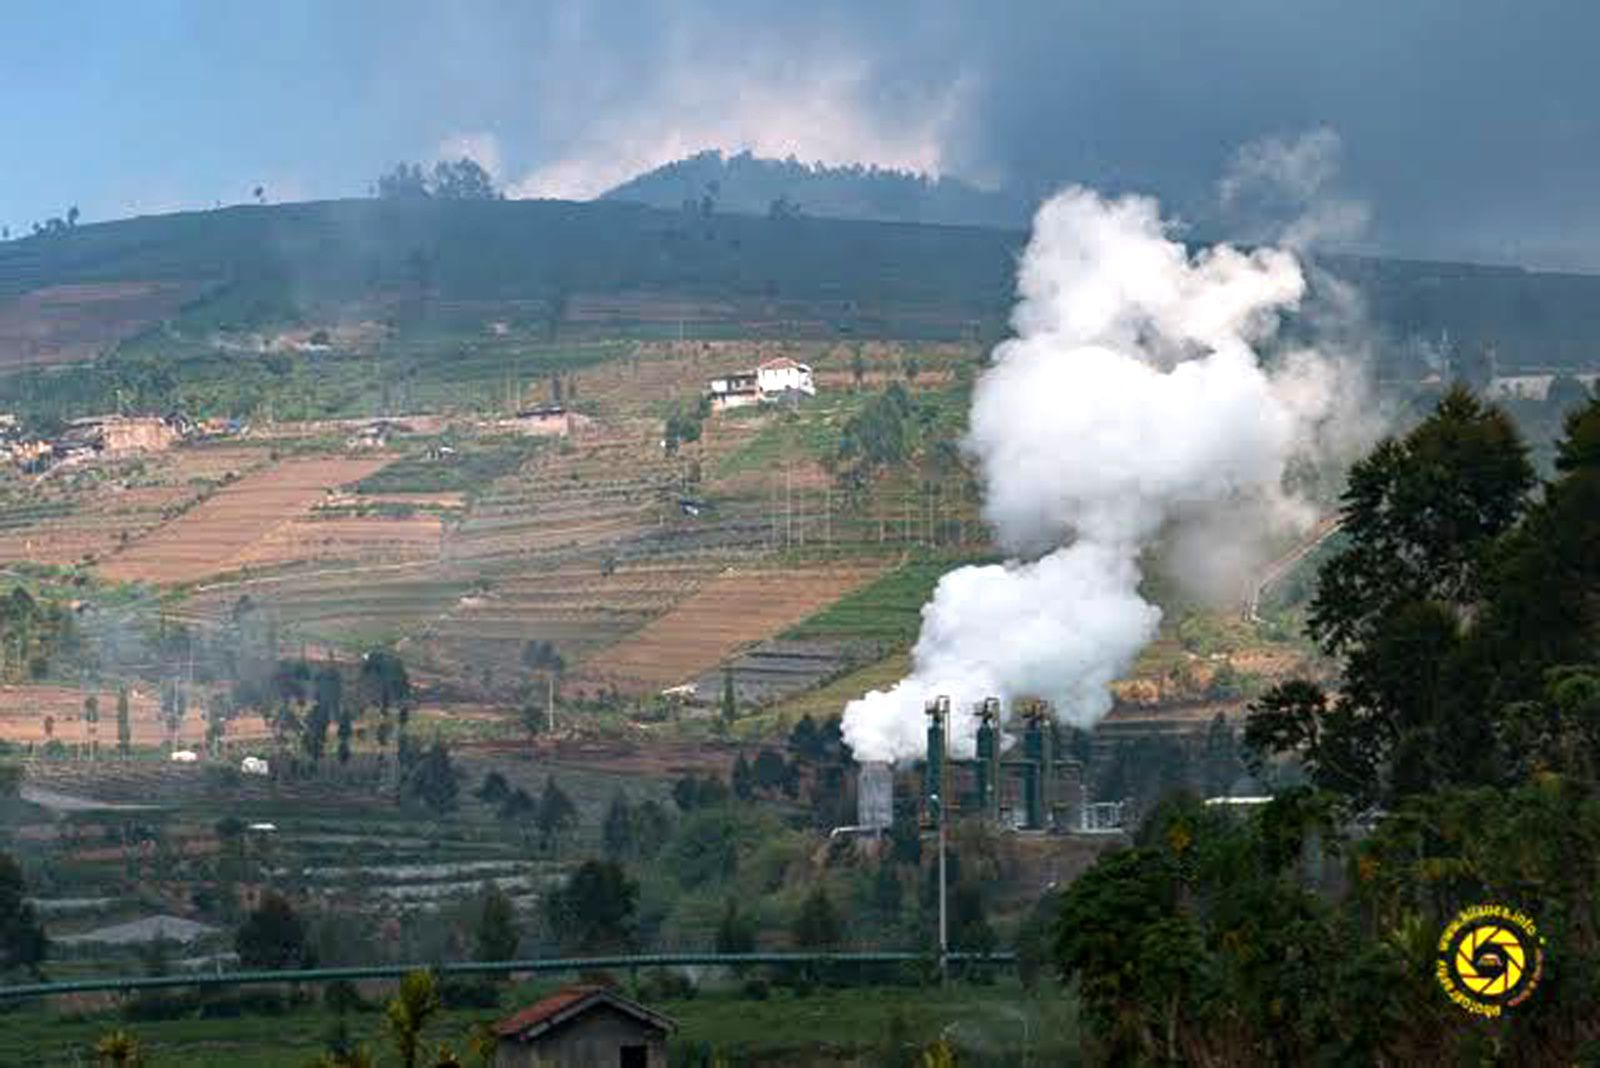 Dieng Plateau - crops and geothermal activity - Photo © 2015 Jean-Michel Mestdagh